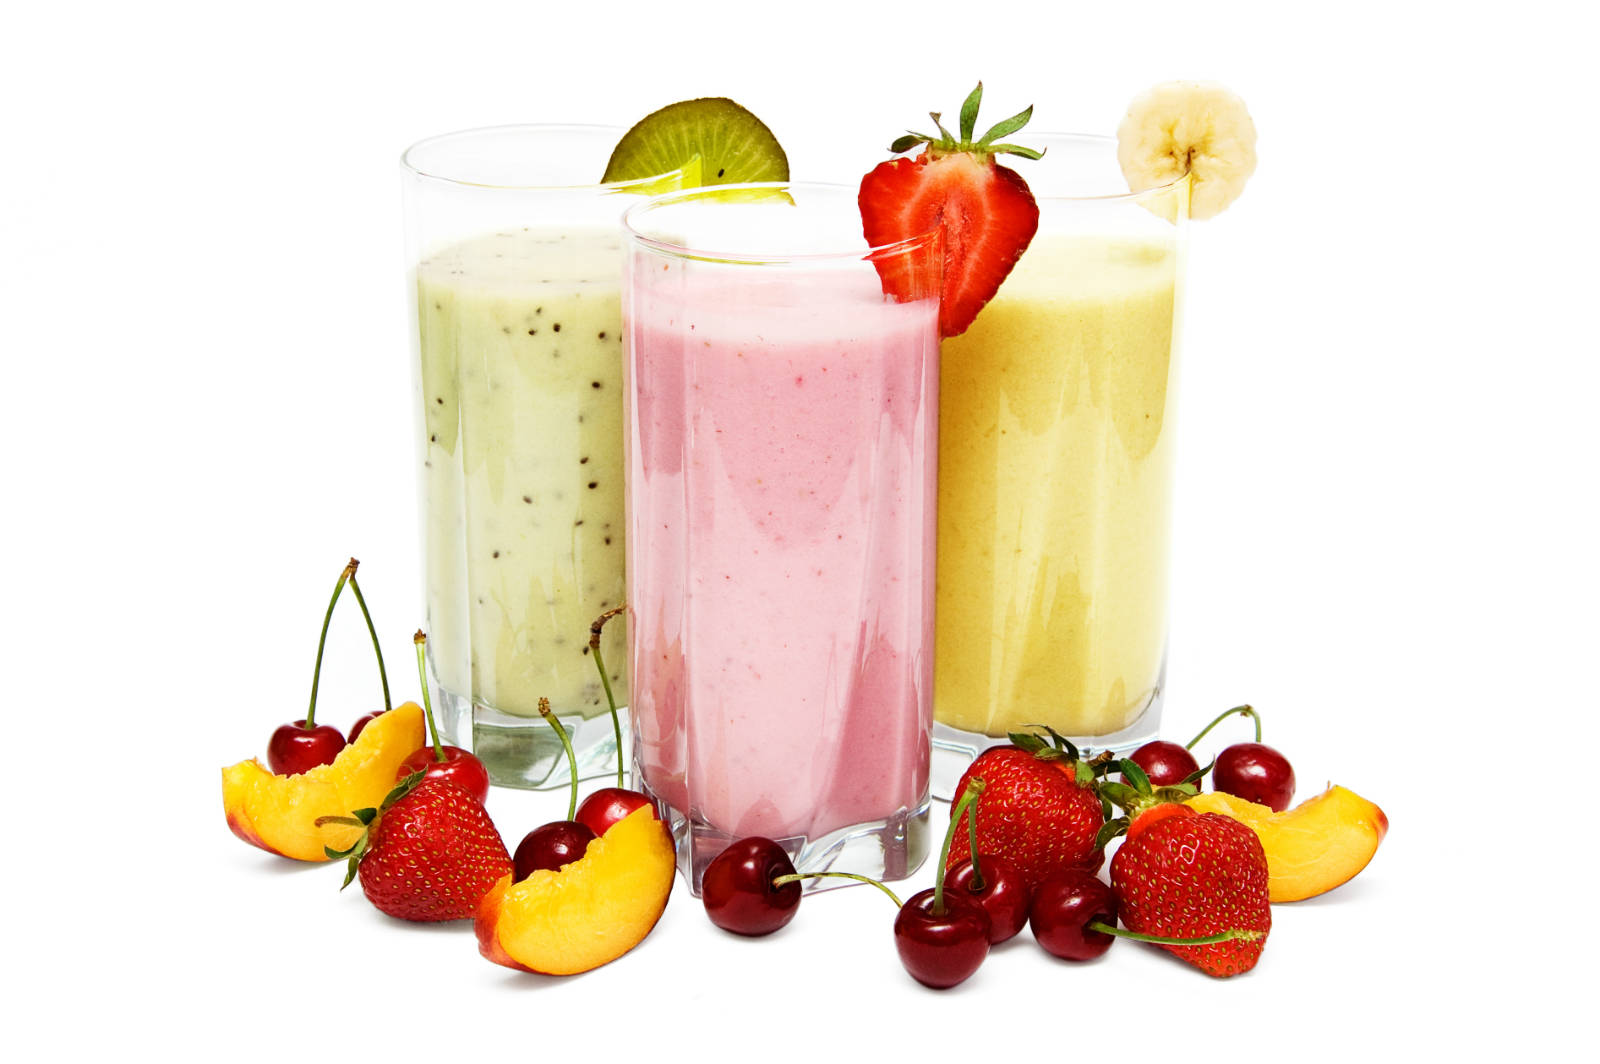 Breakfast Ideas for Weight Loss - Protein Shakes